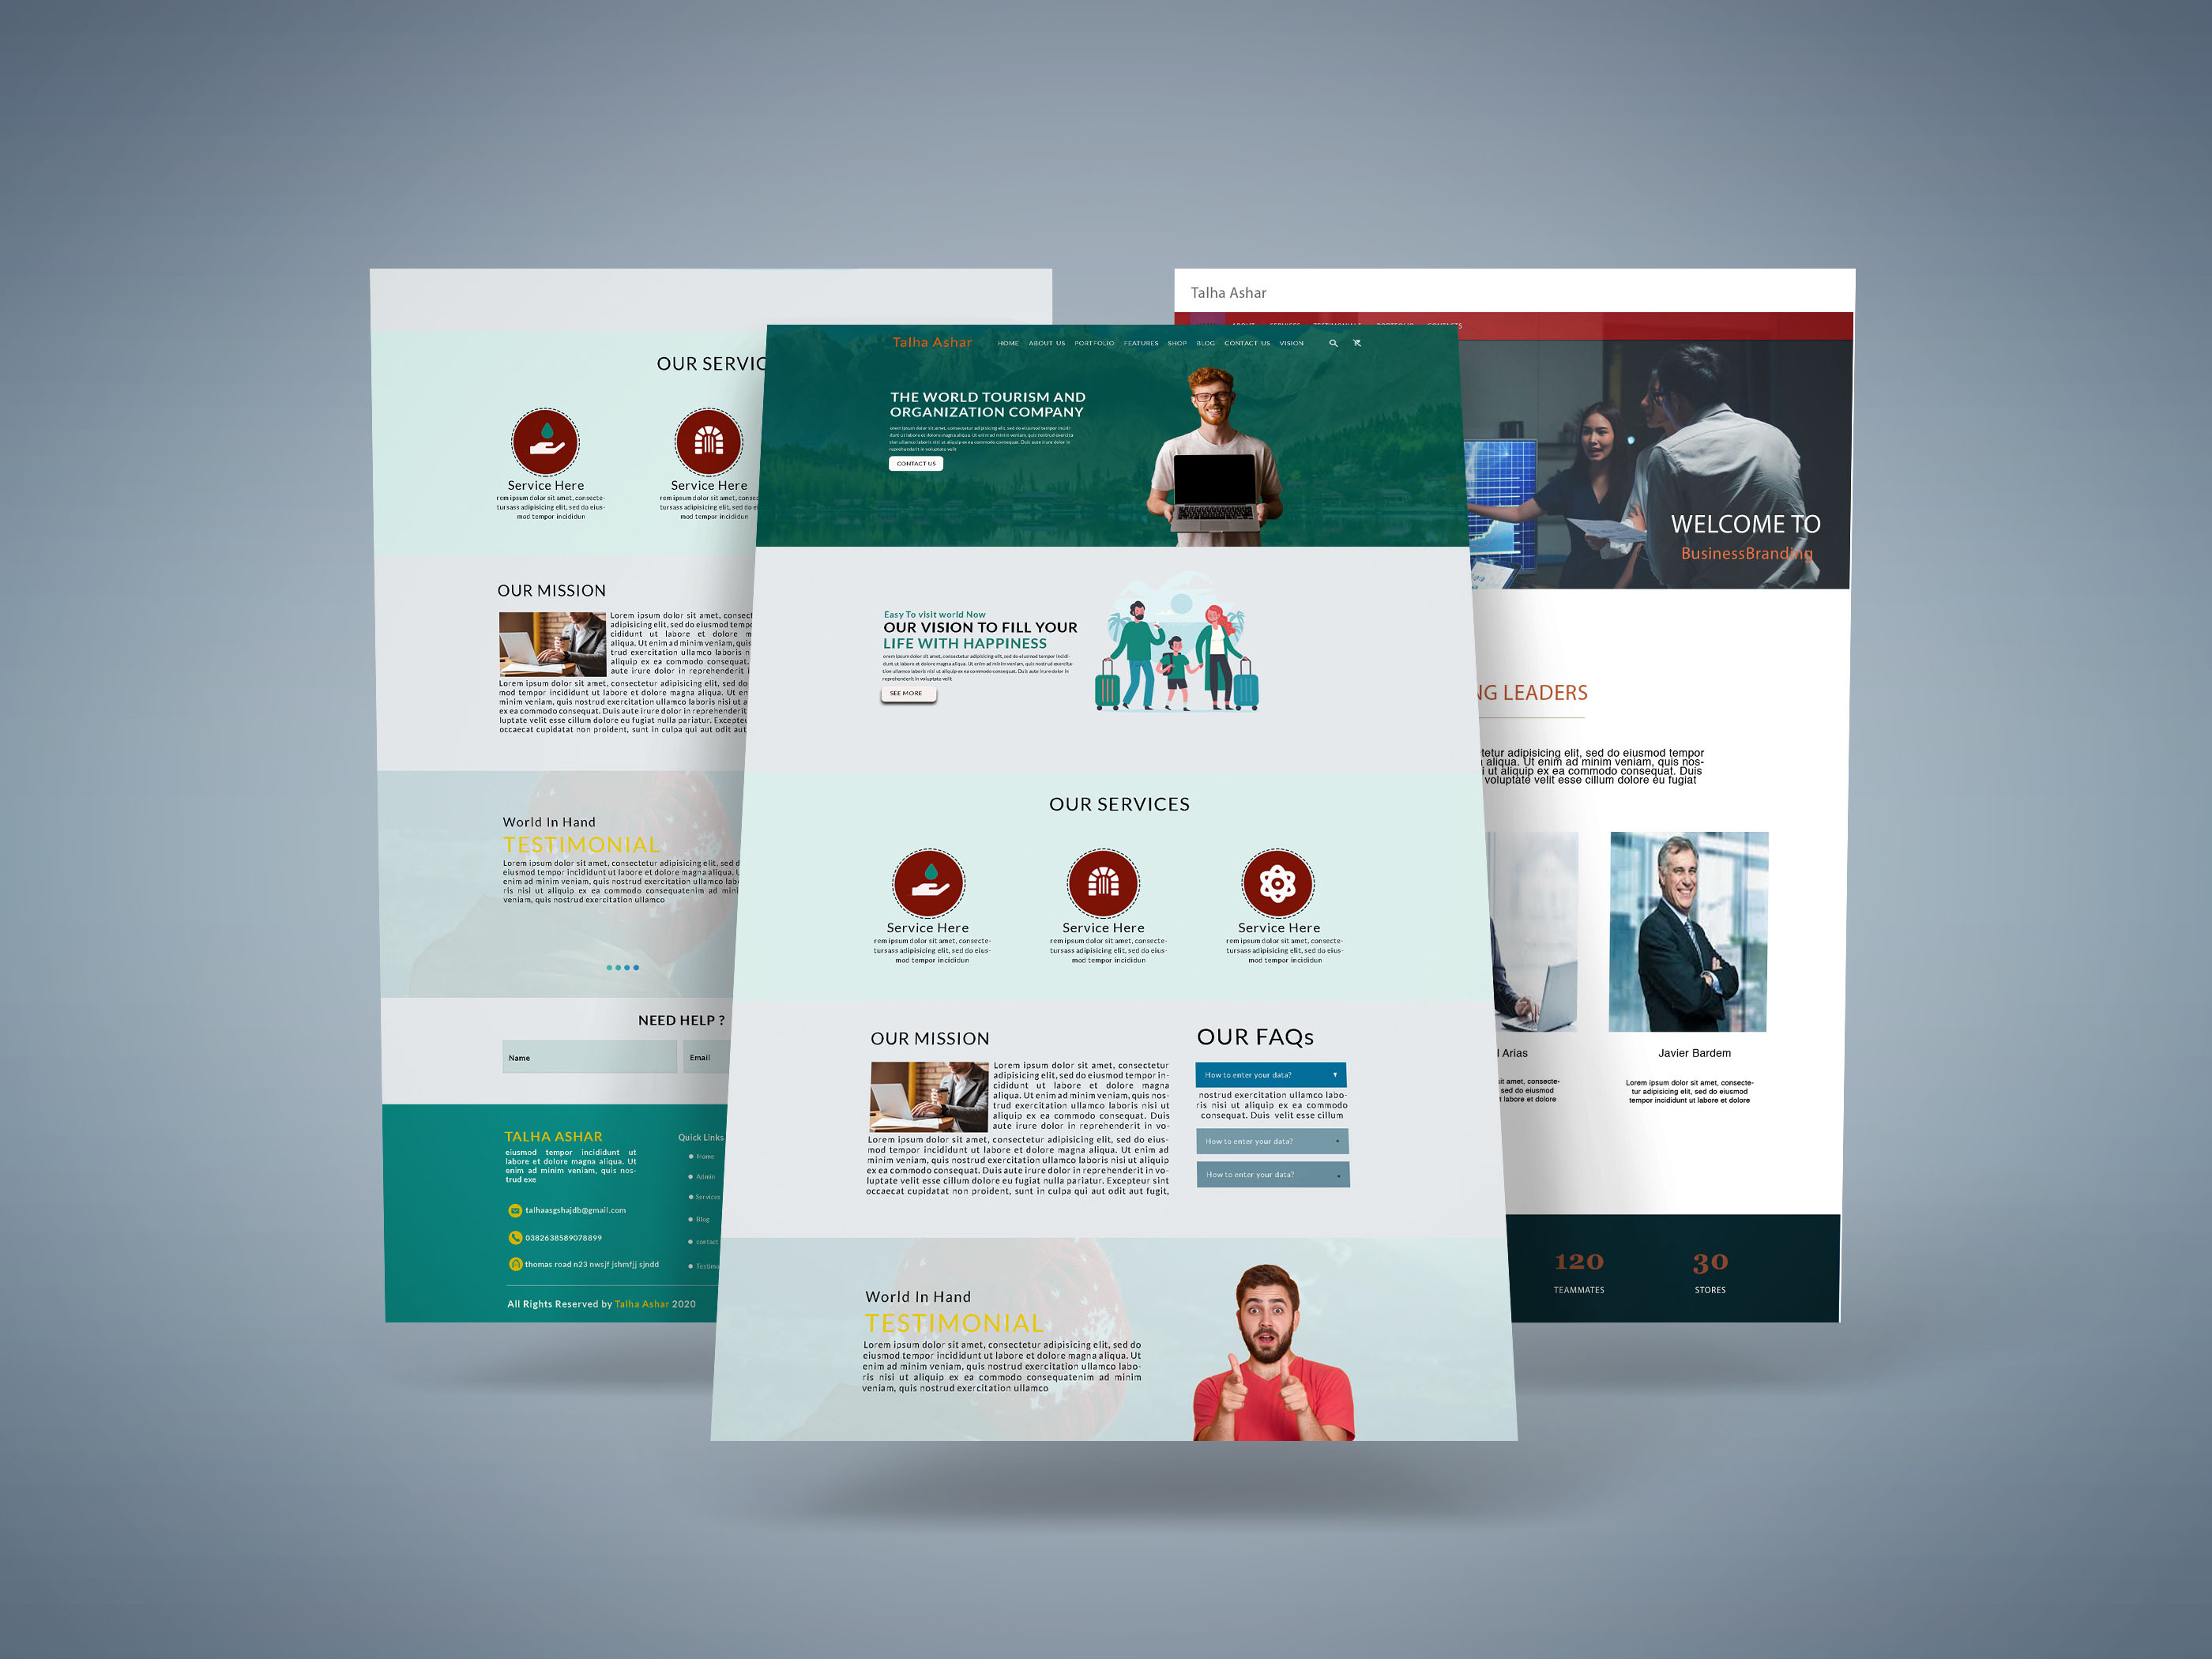 I will design web pages for your business